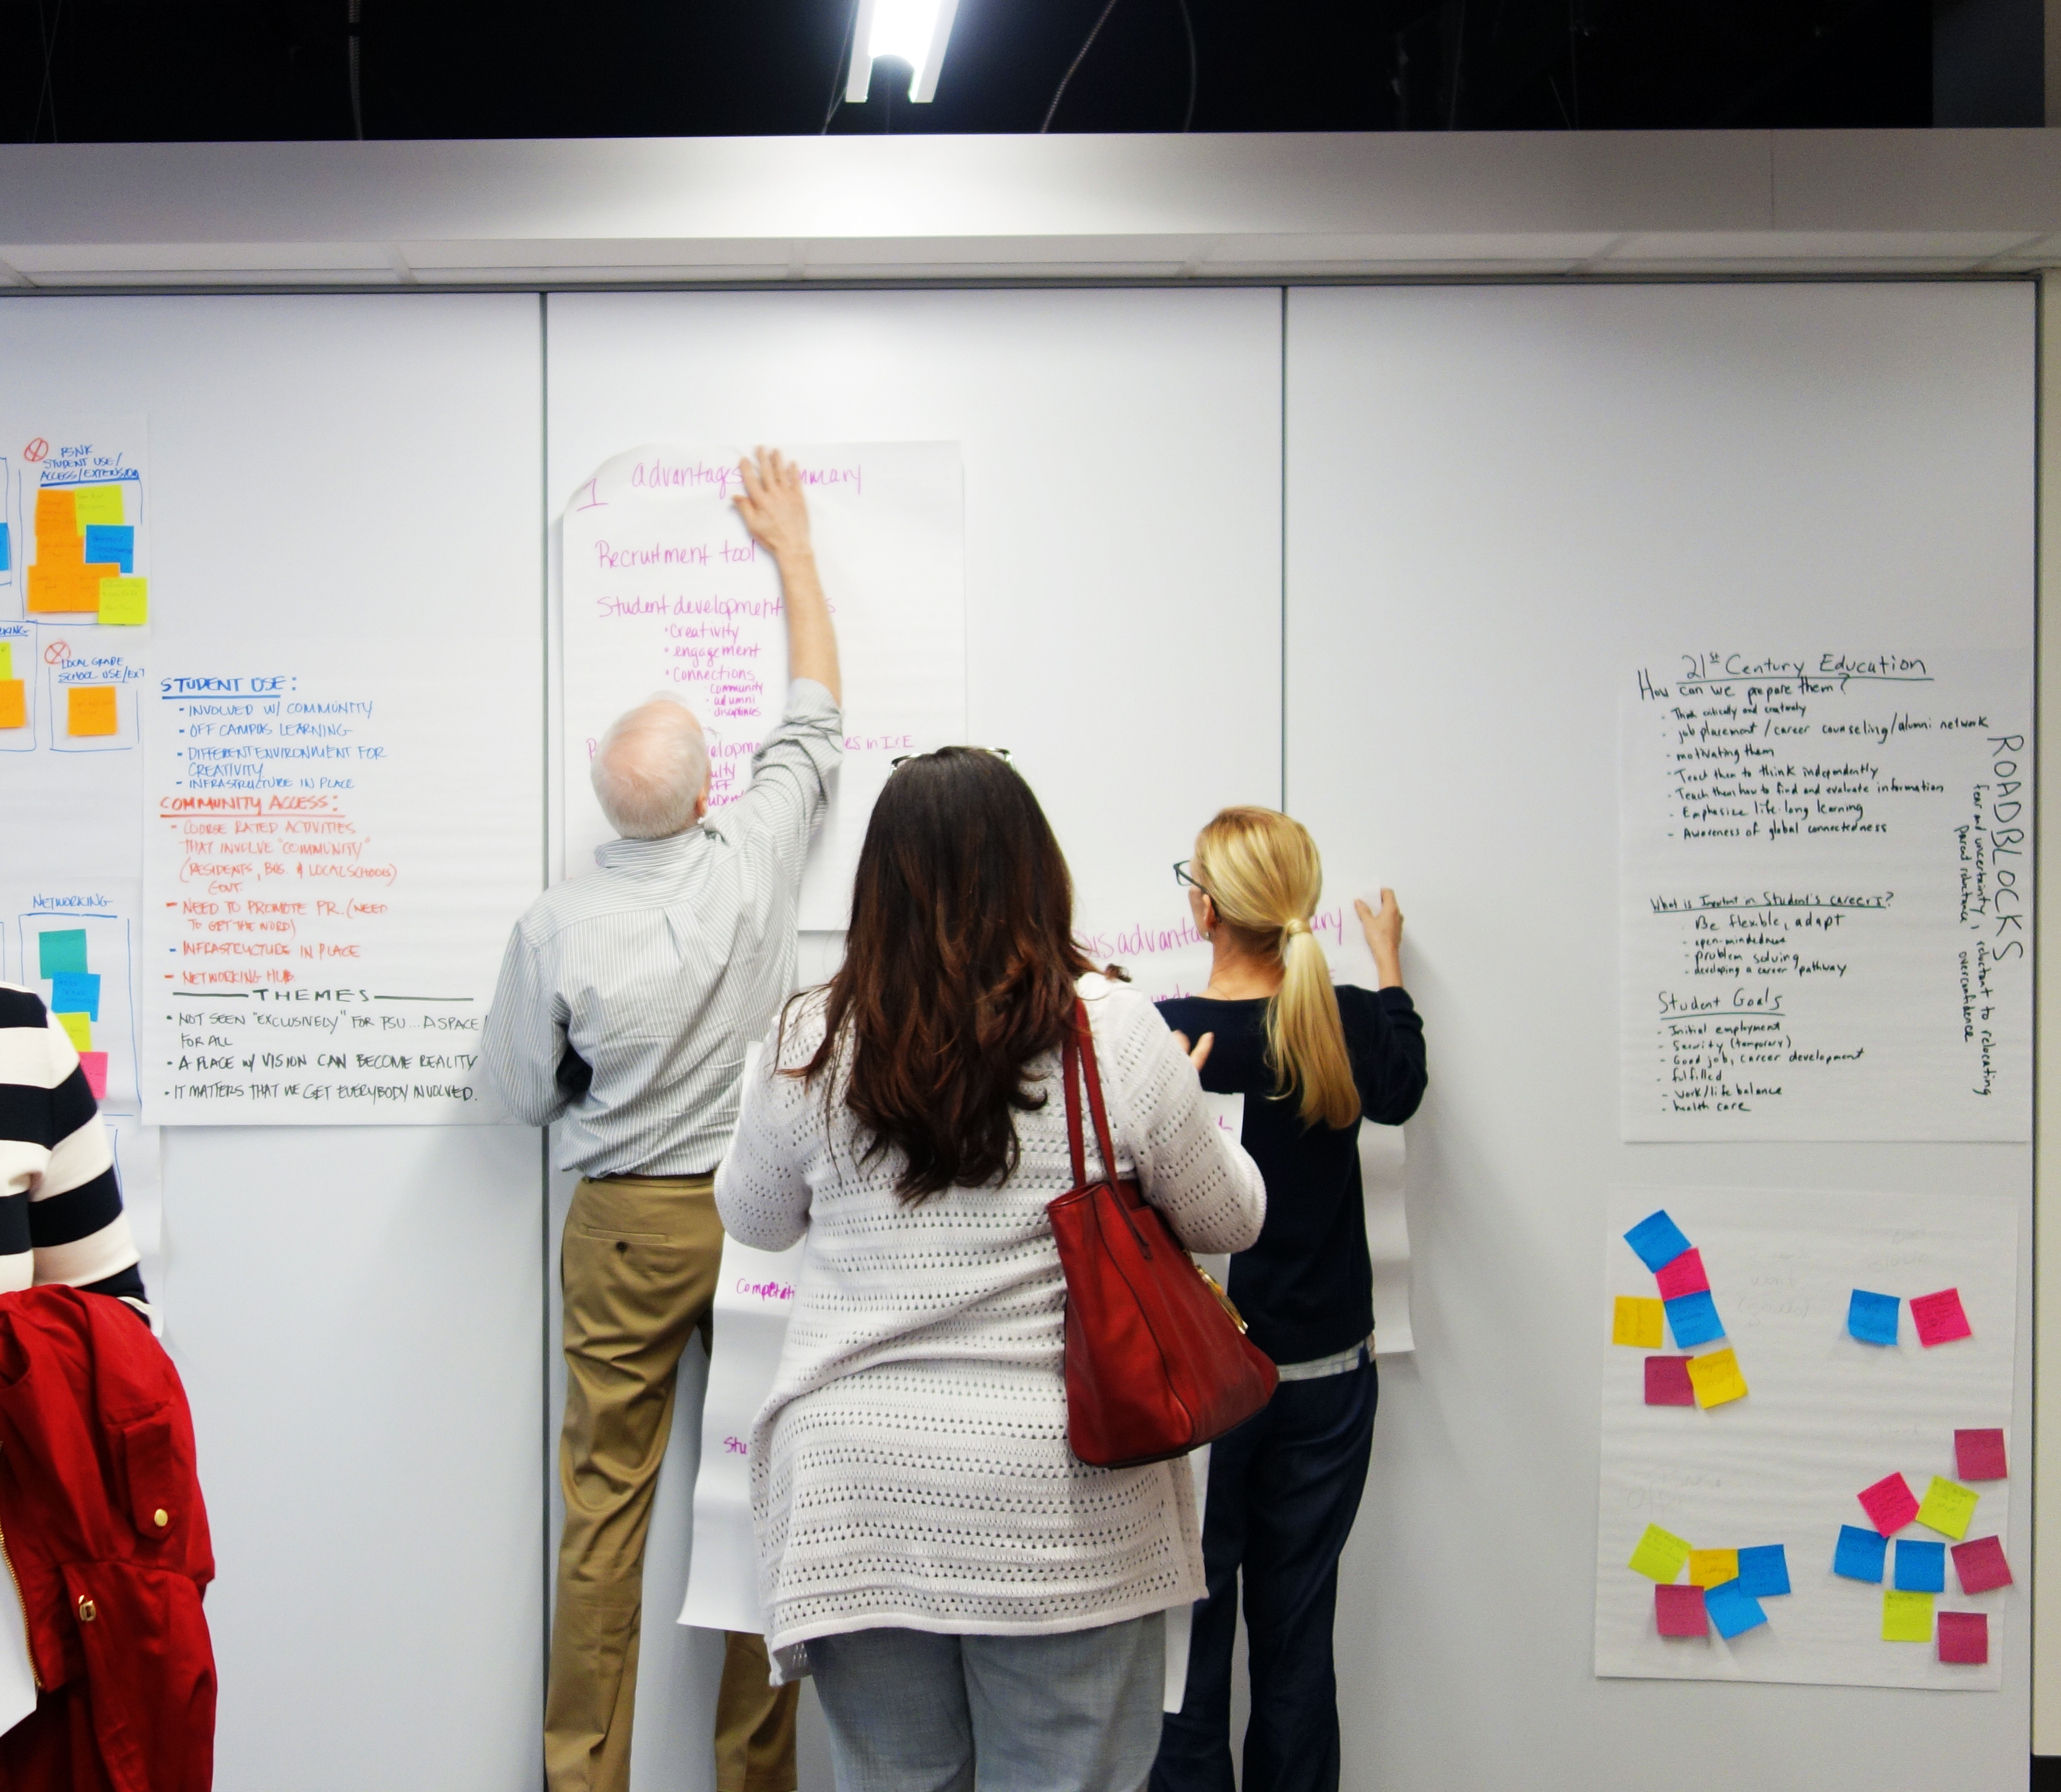 Faculty and staff post their brainstorming ideas on a wall during Corner CON 2018